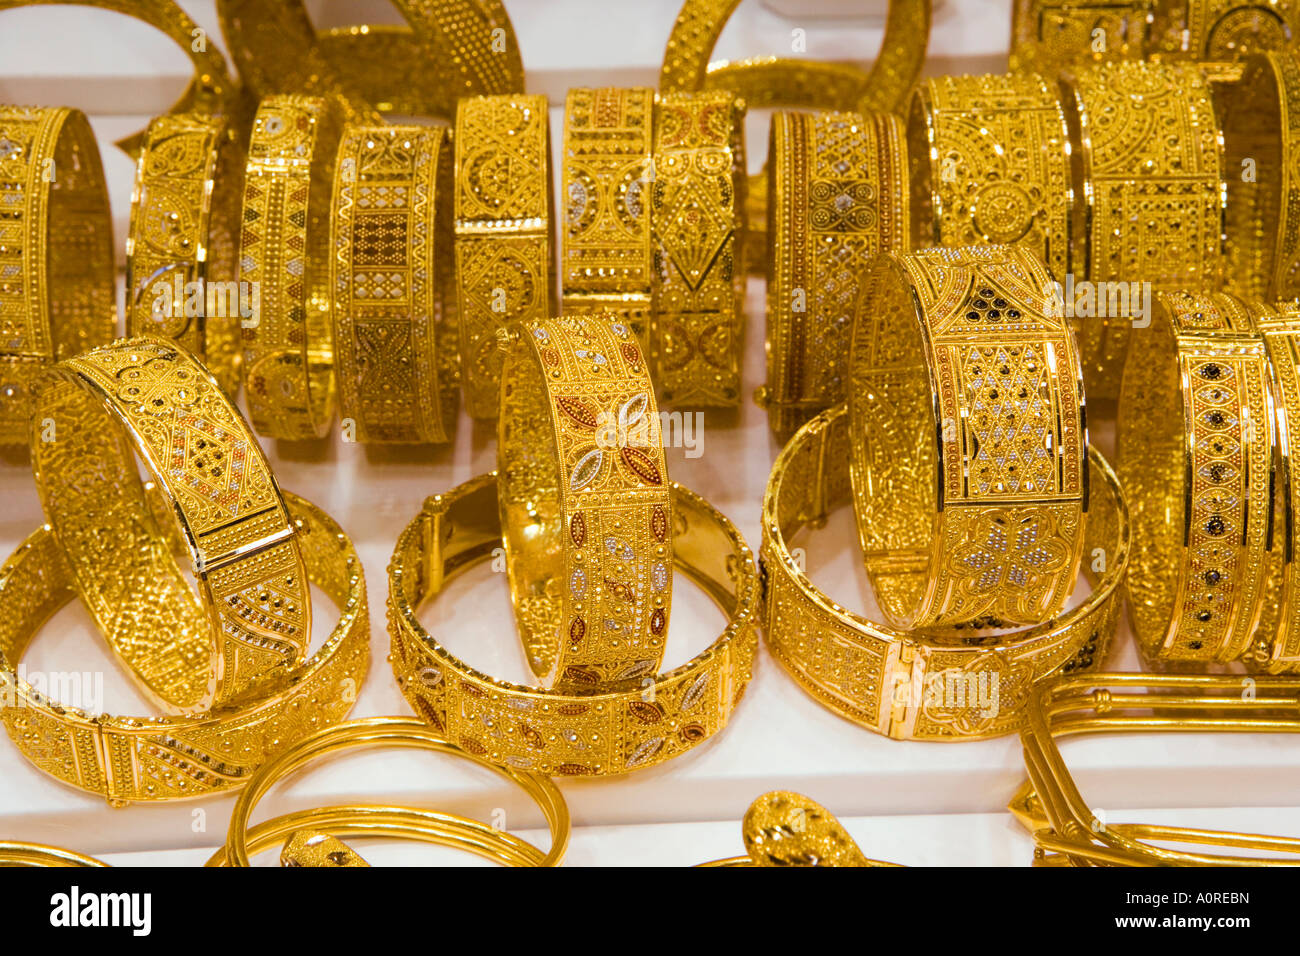 gold souk free stock in uae photo arab royalty jewelry emirates shutterstock united image dubai